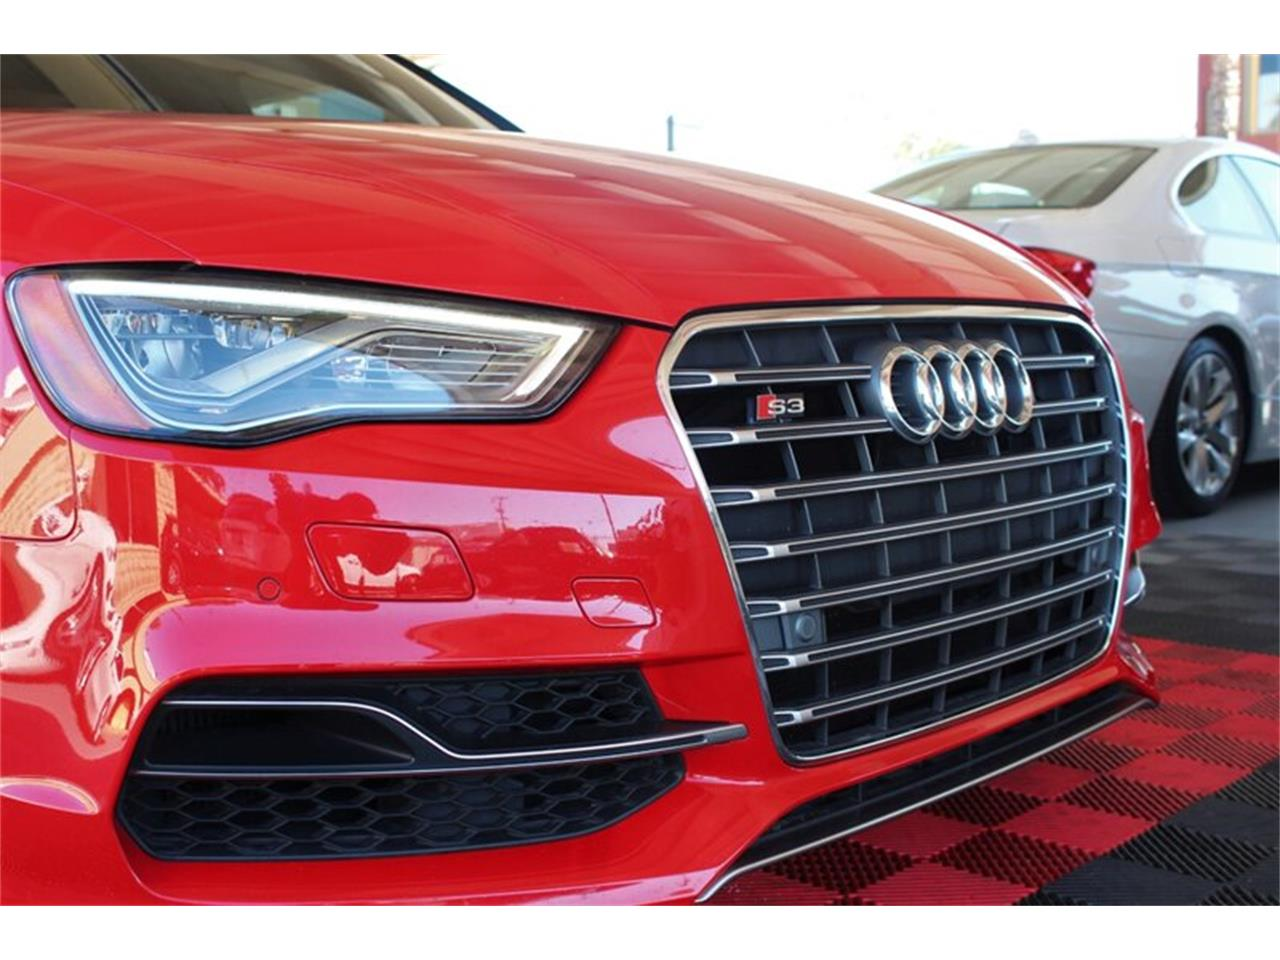 Large Picture of '15 Audi S3 located in Sherman Oaks California Offered by Monza Car - Q3OQ